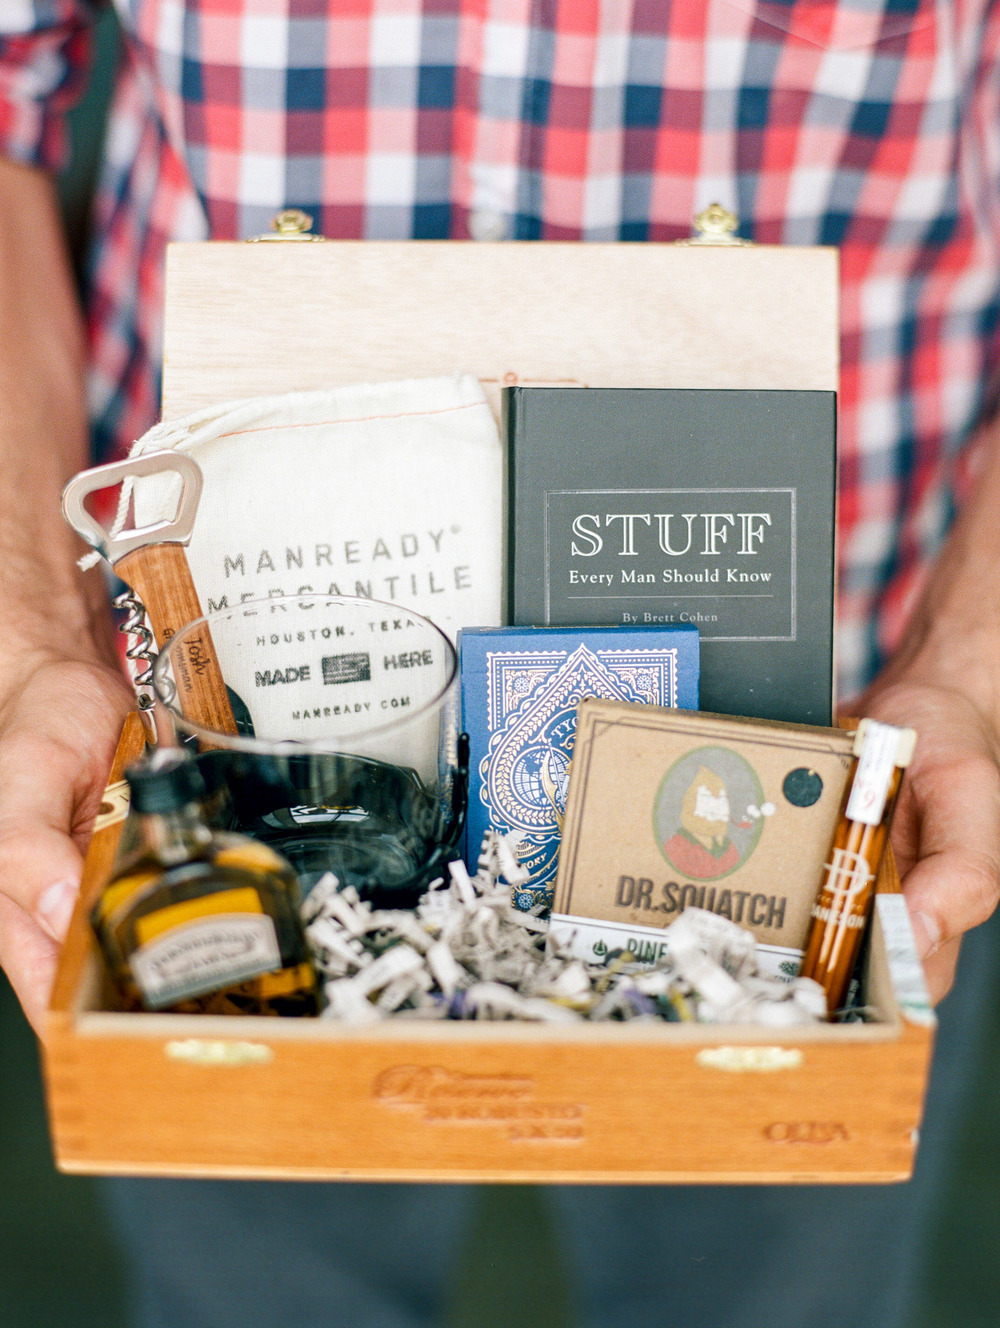 Dana Fernandez Photography Houston Wedding Photographer Groomsmen Gifts Film Will You Be My Manready Mercantile-2.jpg